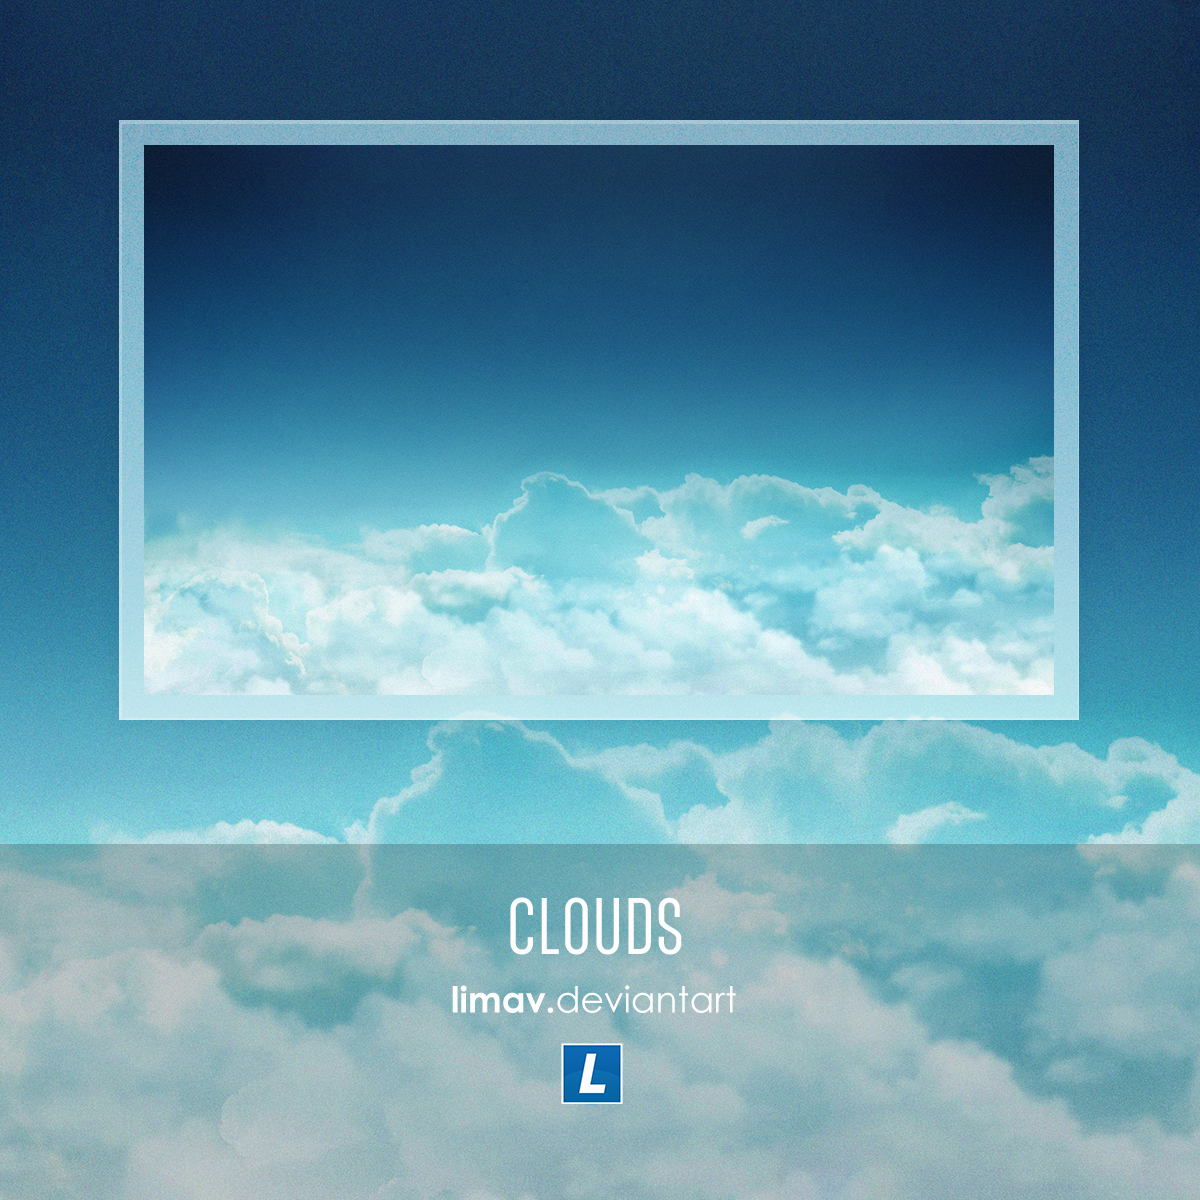 Clouds - Wallpaper